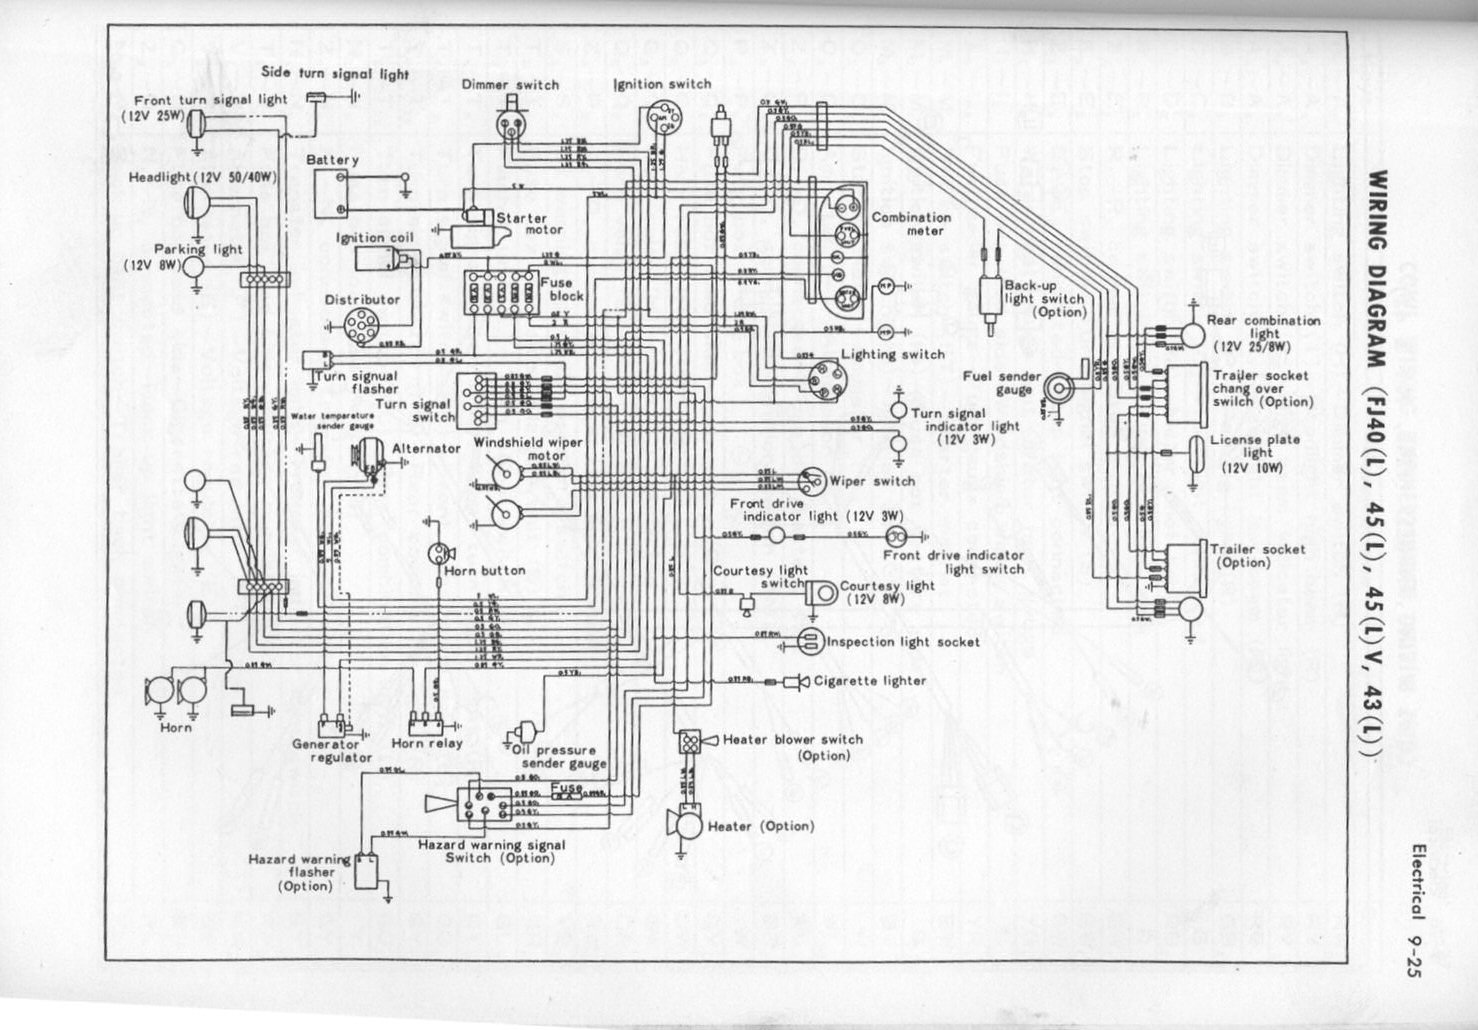 1978 fj40 wiring diagram tele schematics